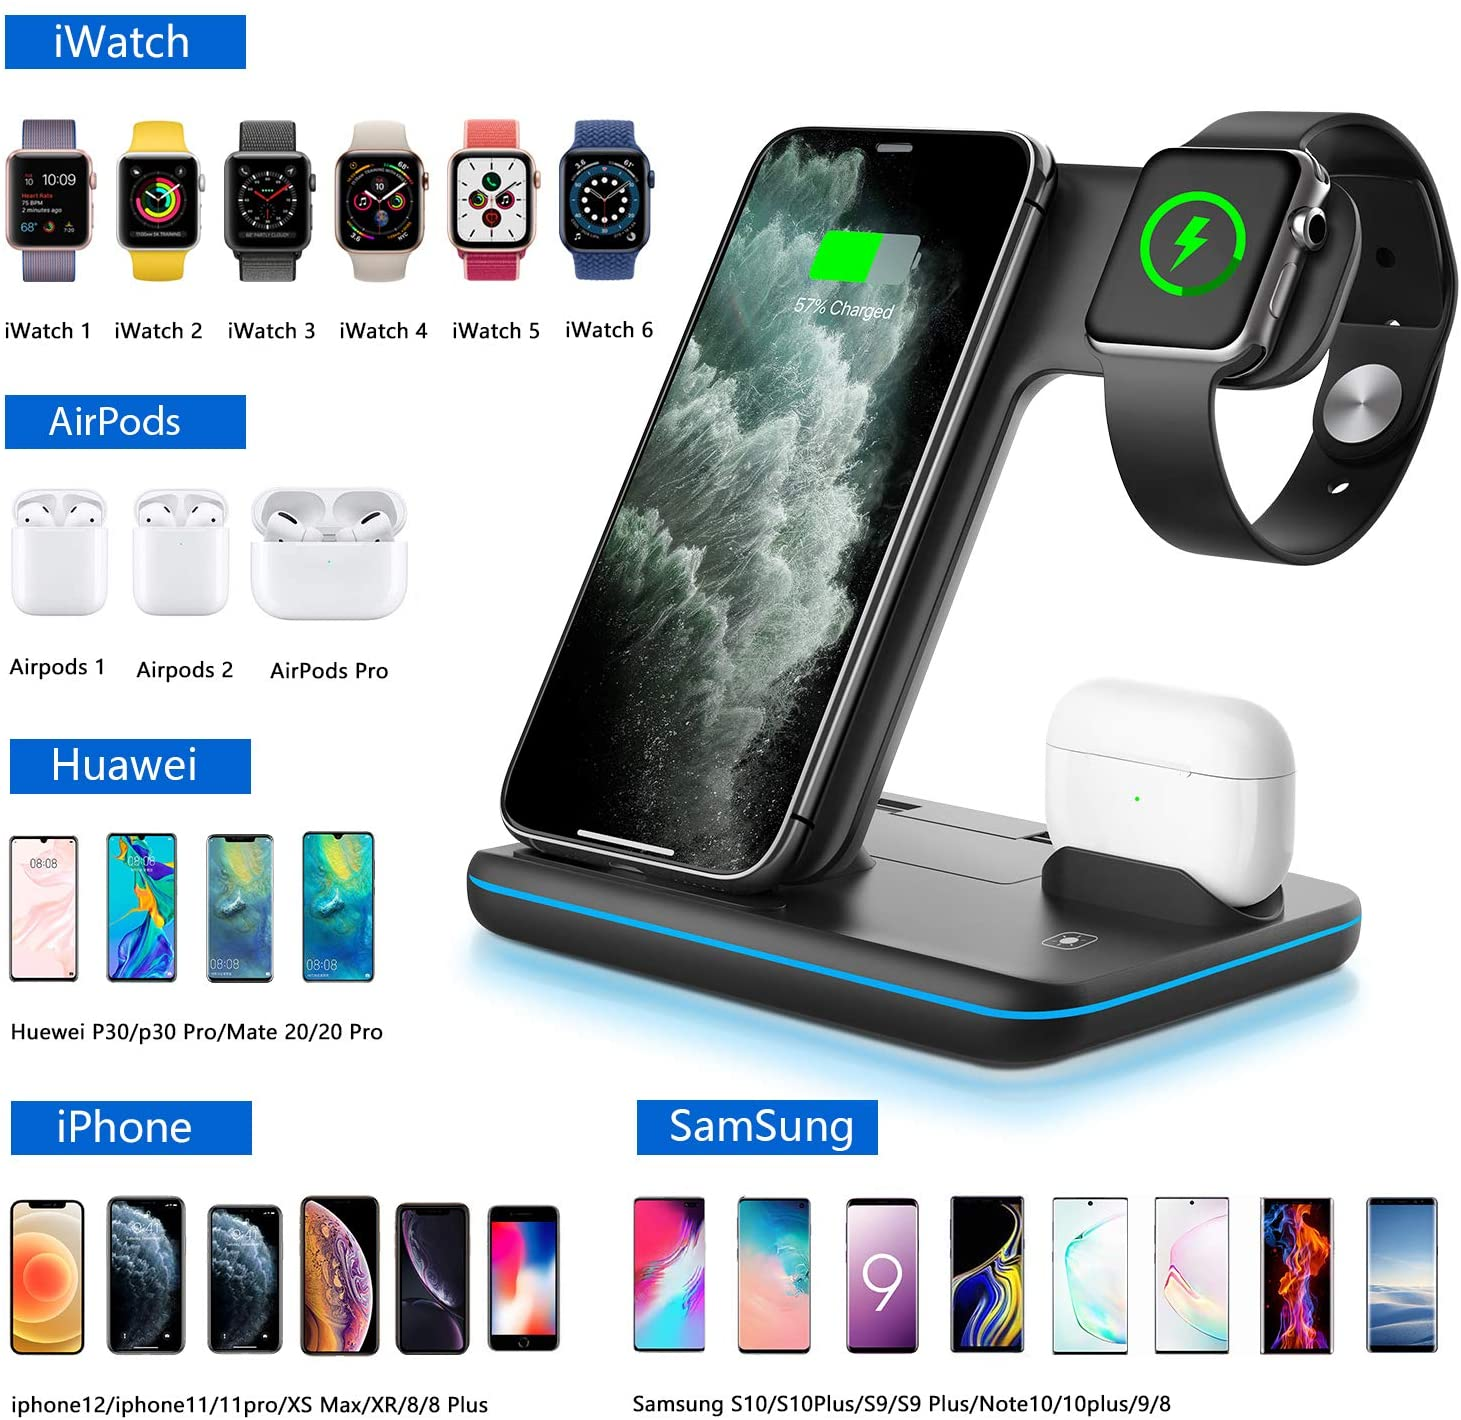 WALOTAR Wireless Charger, 3 in 1 Qi-Certified 15W Fast Charging Station for Apple iWatch Series SE/6/5/4/3/2/1,AirPods, Compatible for iPhone 12/11 Series/XS MAX/XR/XS/X/8/8 Plus/Samsung (Black)